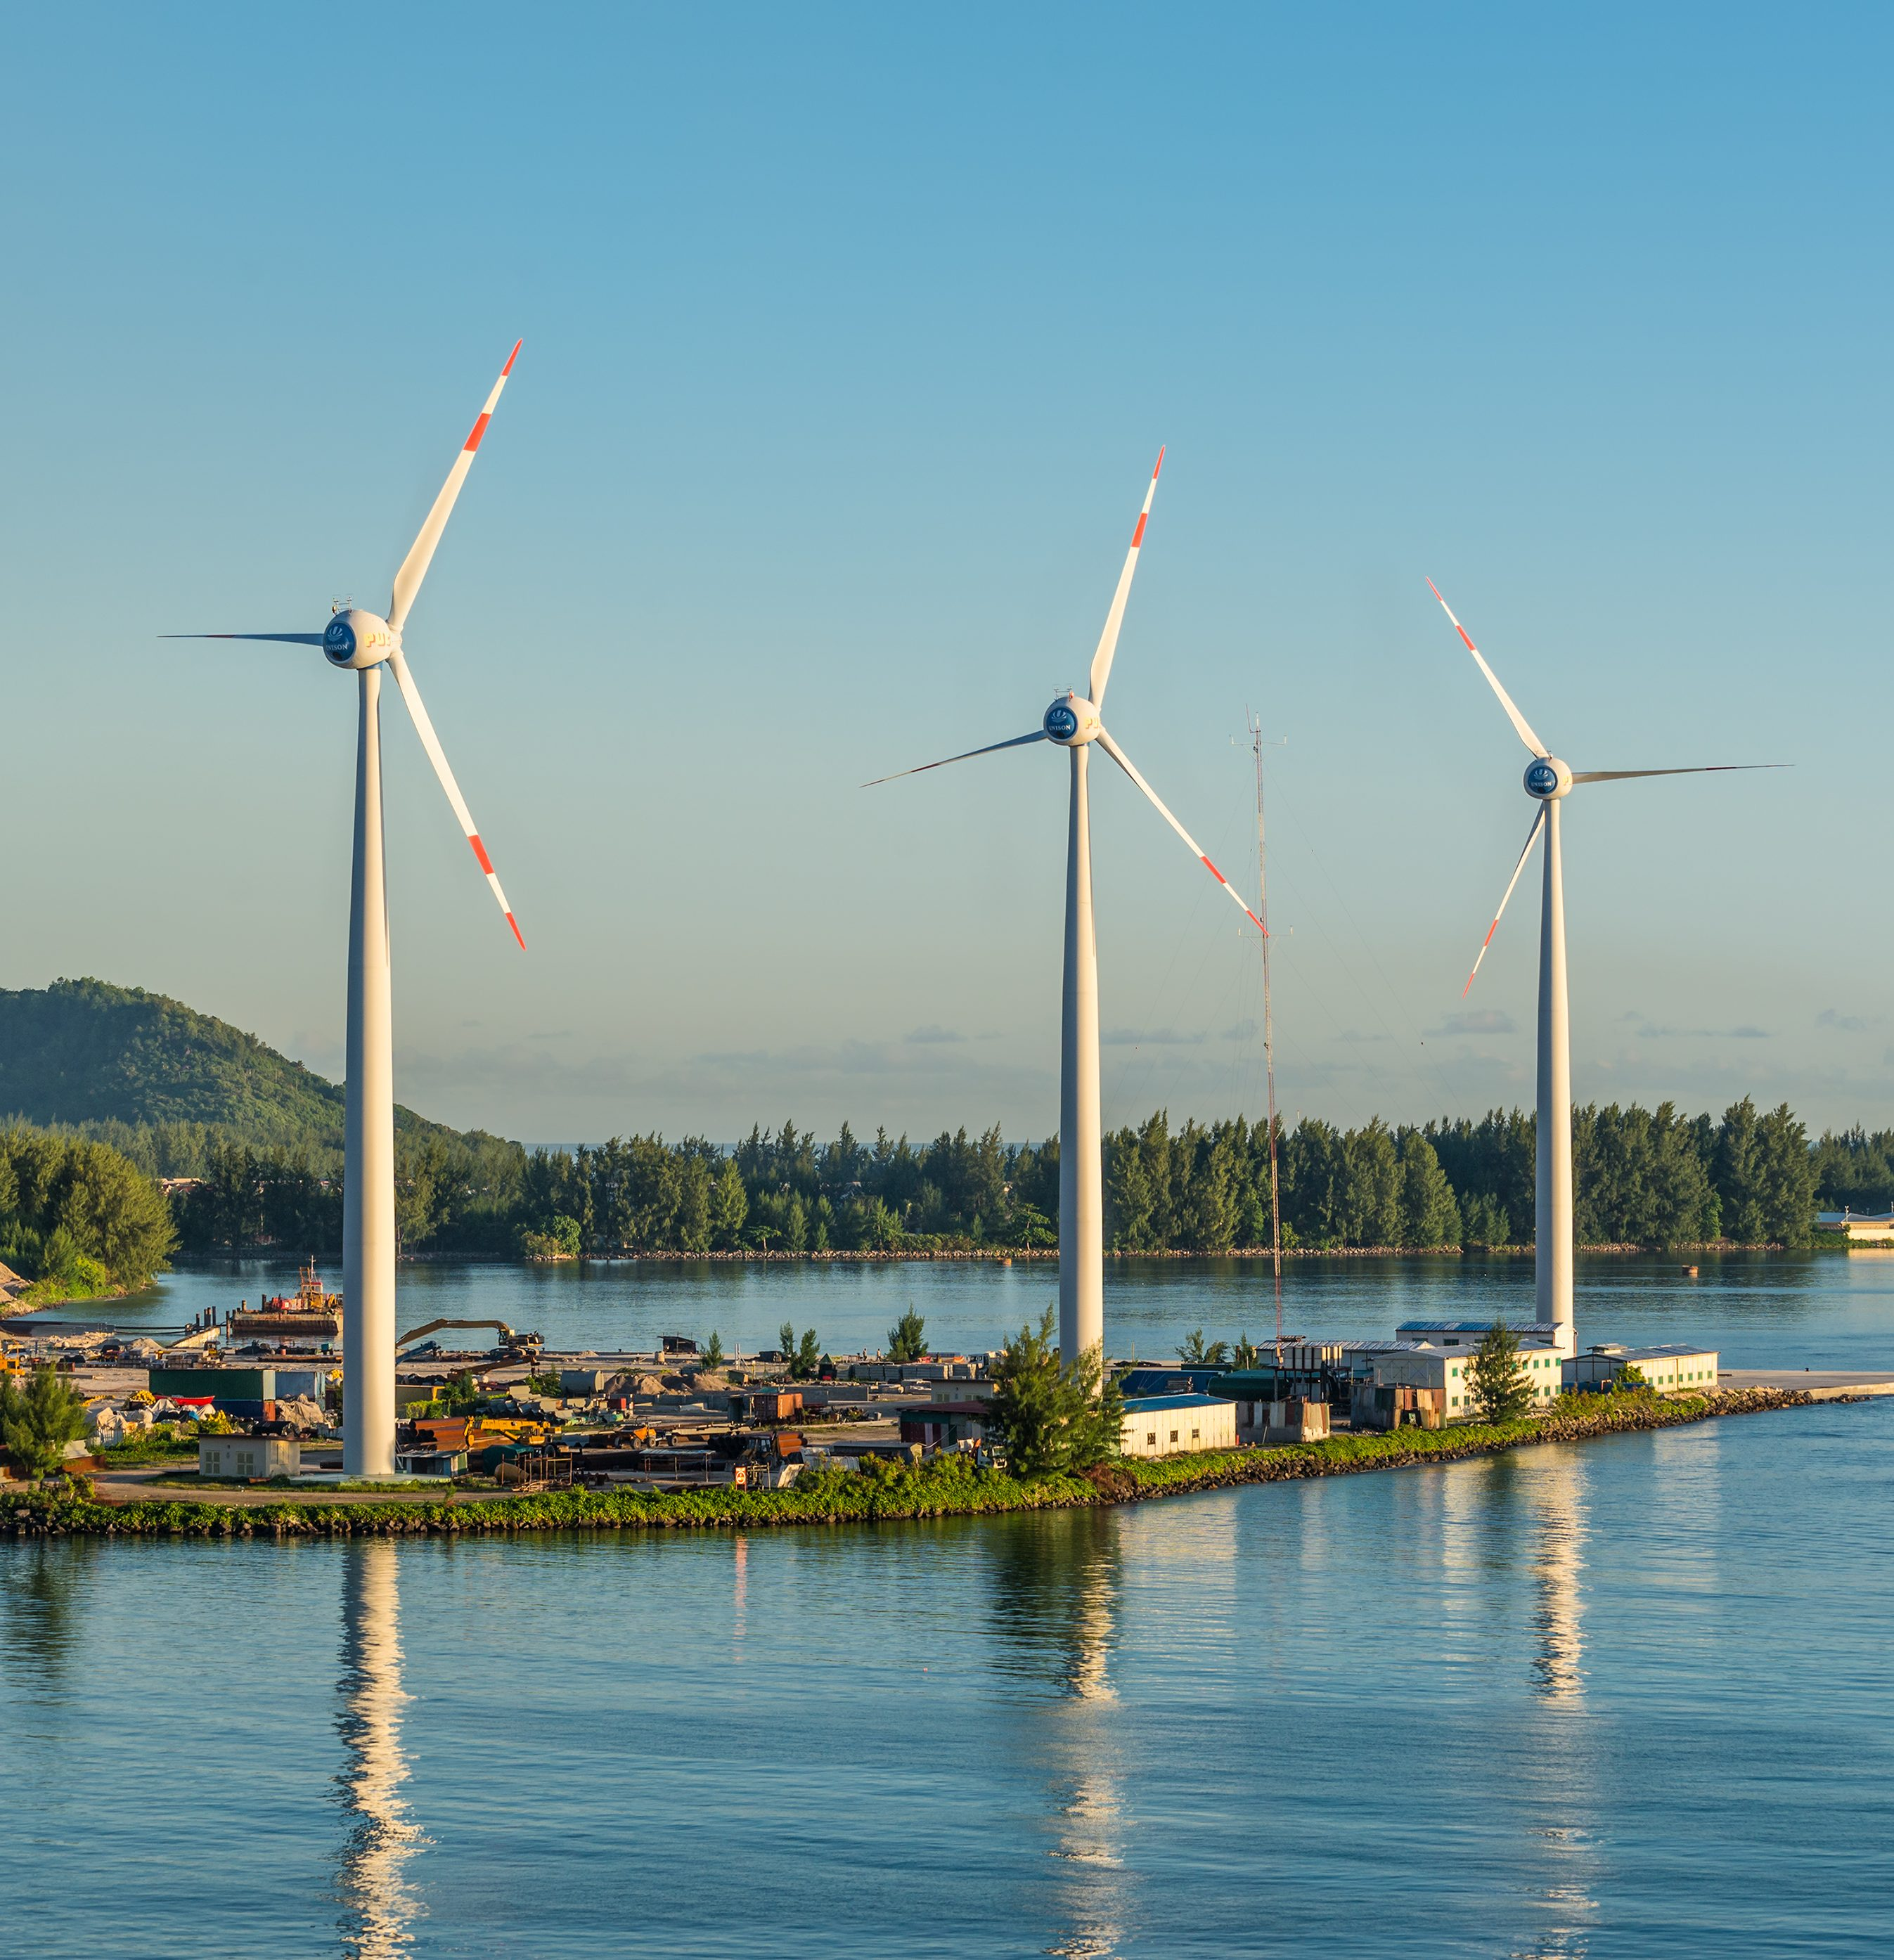 Victoria, Mahe island, Seychelles - December 15, 2015: Wind turbines producing clean electricity at dawn in Victoria, Mahe Island, Seychelles.